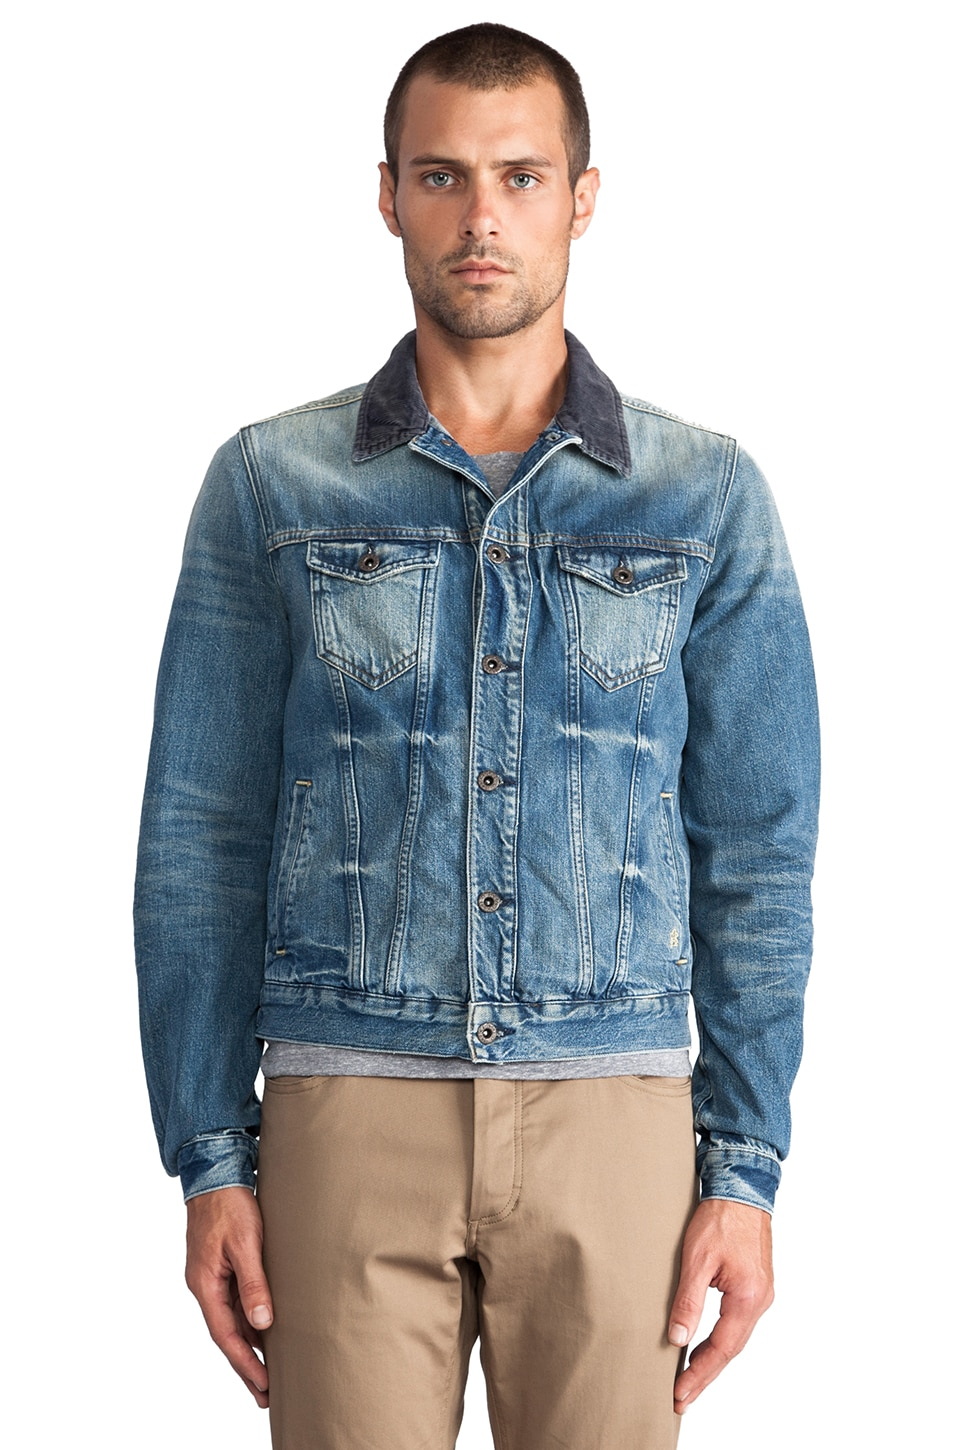 Scotch & Soda Trucker Denim Jacket in Denim Blue